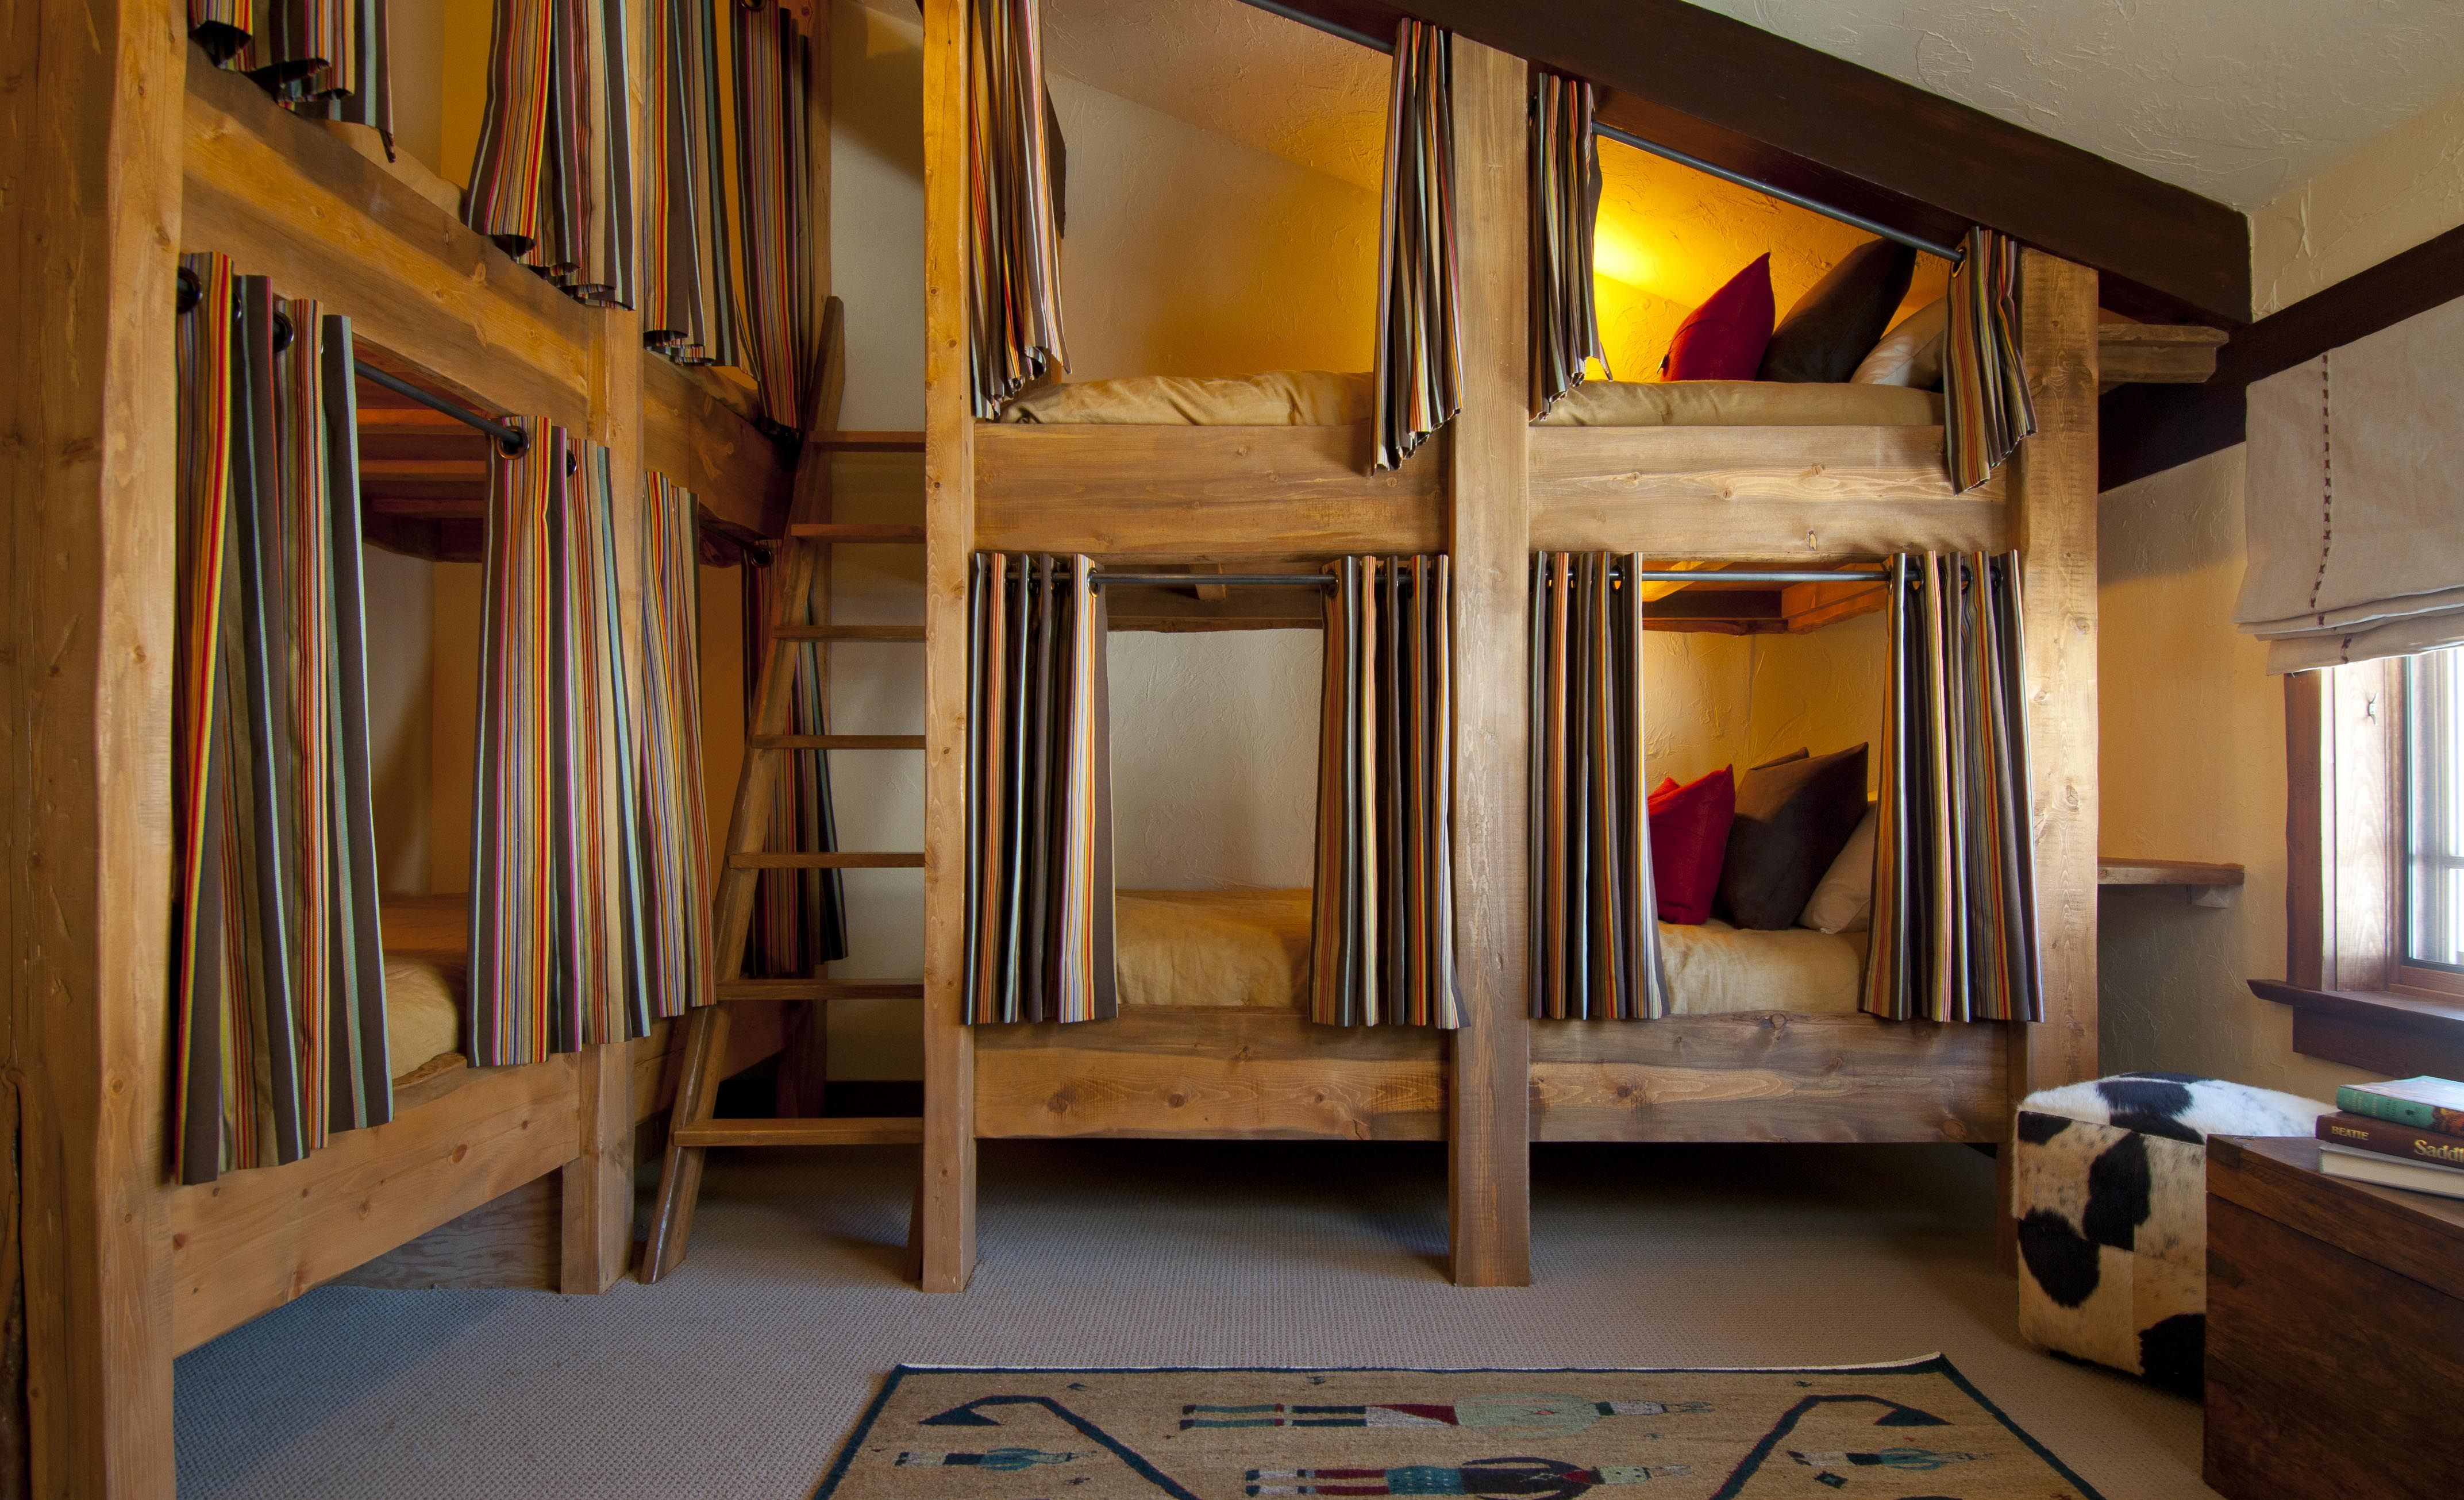 Pinterest for How to build a bunk room